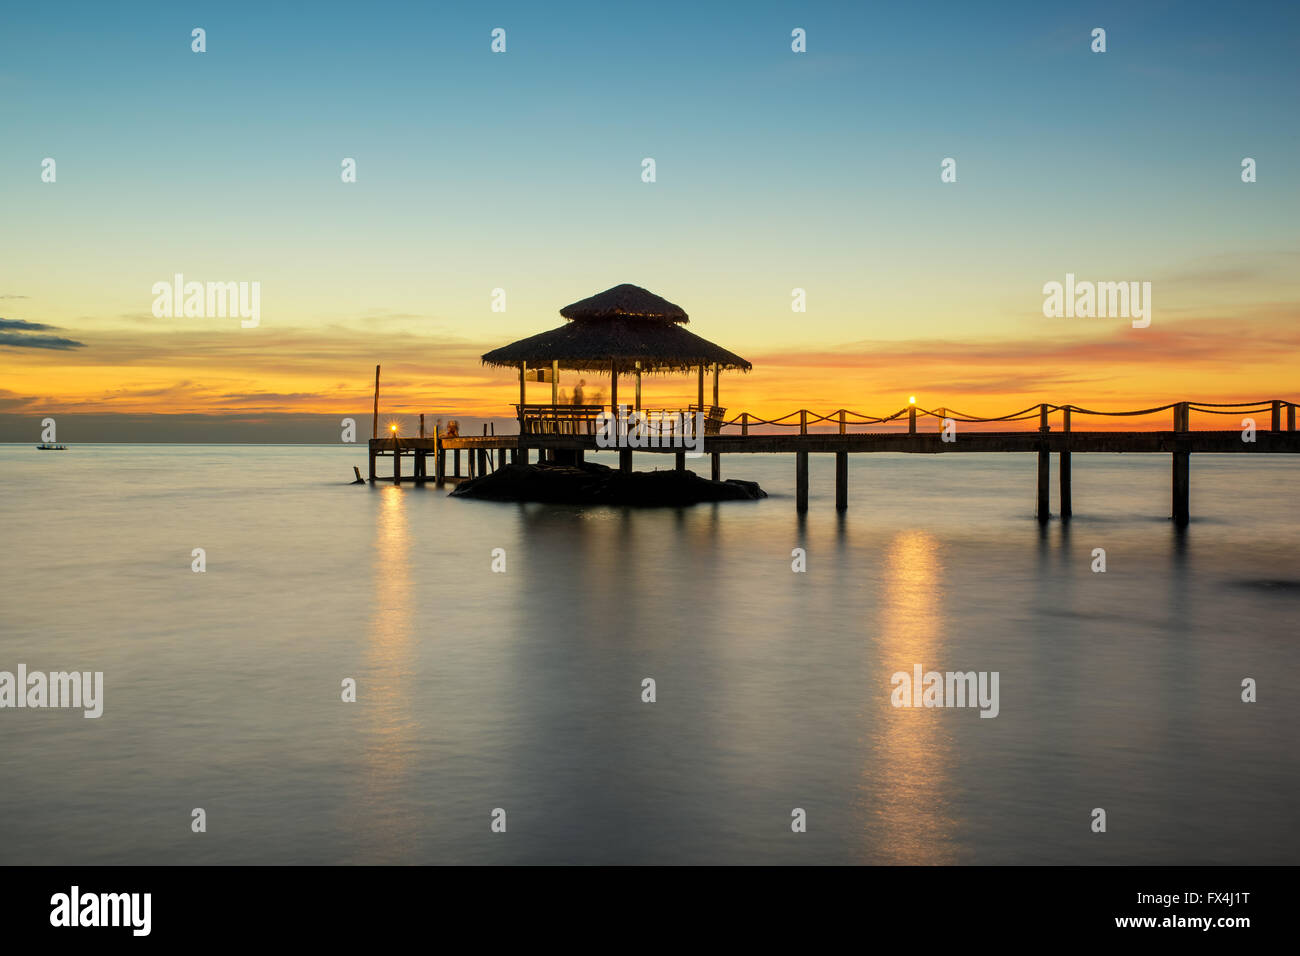 Summer, Travel, Vacation and Holiday concept - Wooden pier between sunset in Phuket, Thailand Stock Photo